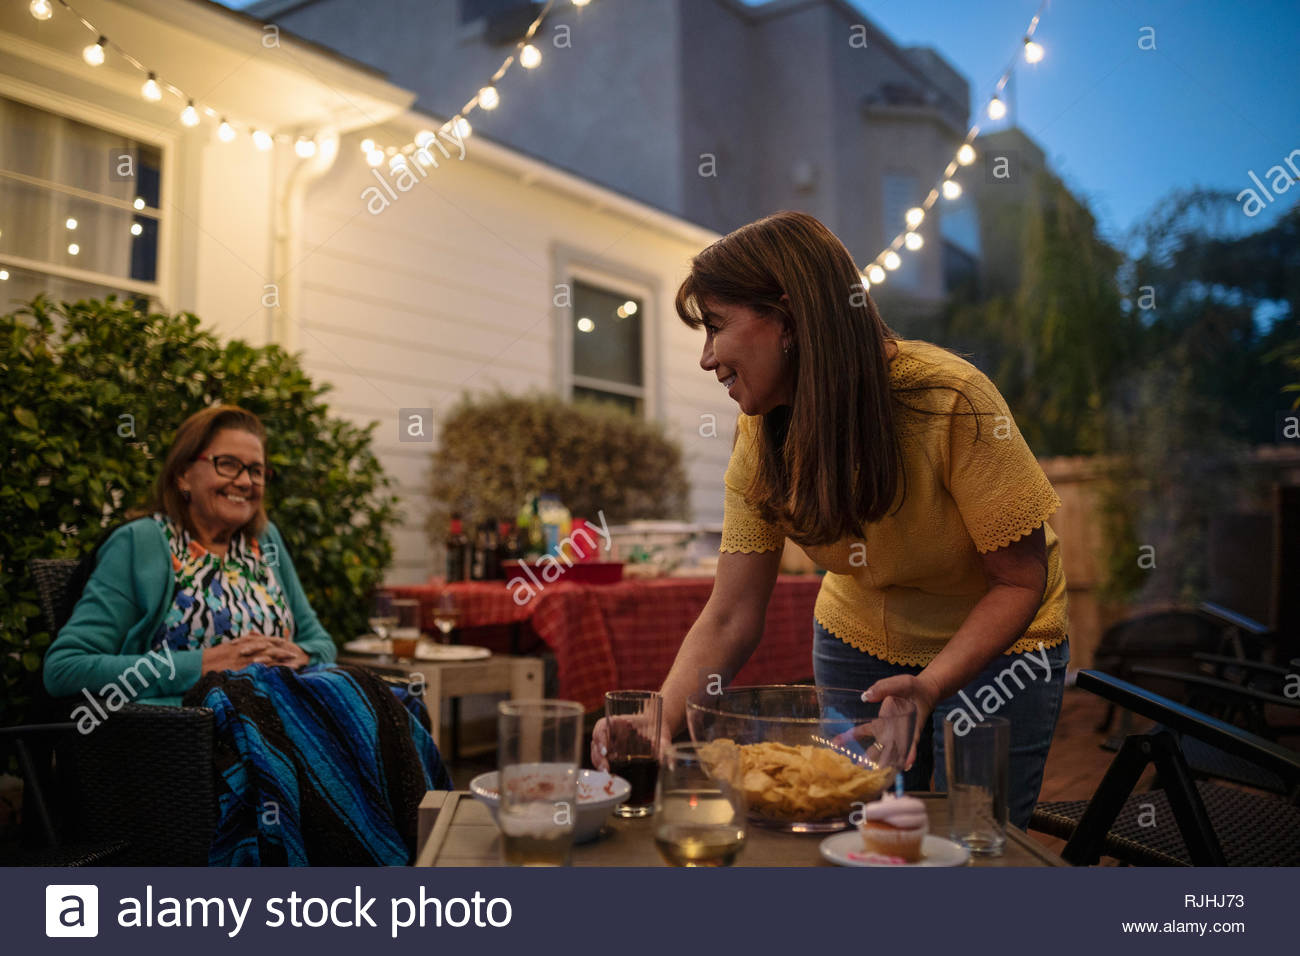 Latinx daughter and senior mother cleaning up after barbecue on patio - Stock Image